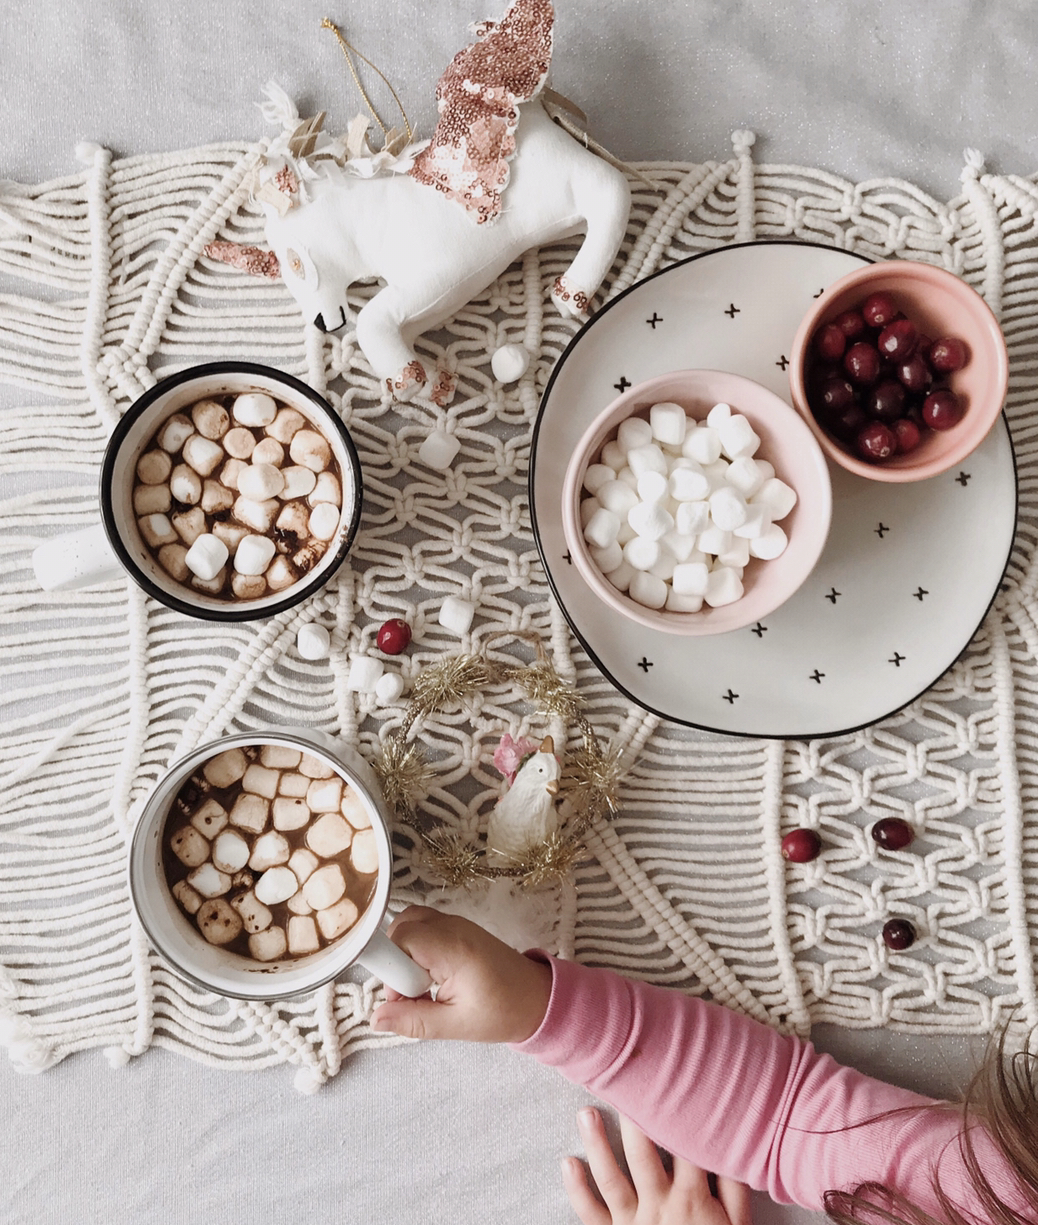 We've loved sipping hot cocoa and stringing cranberries this season too!